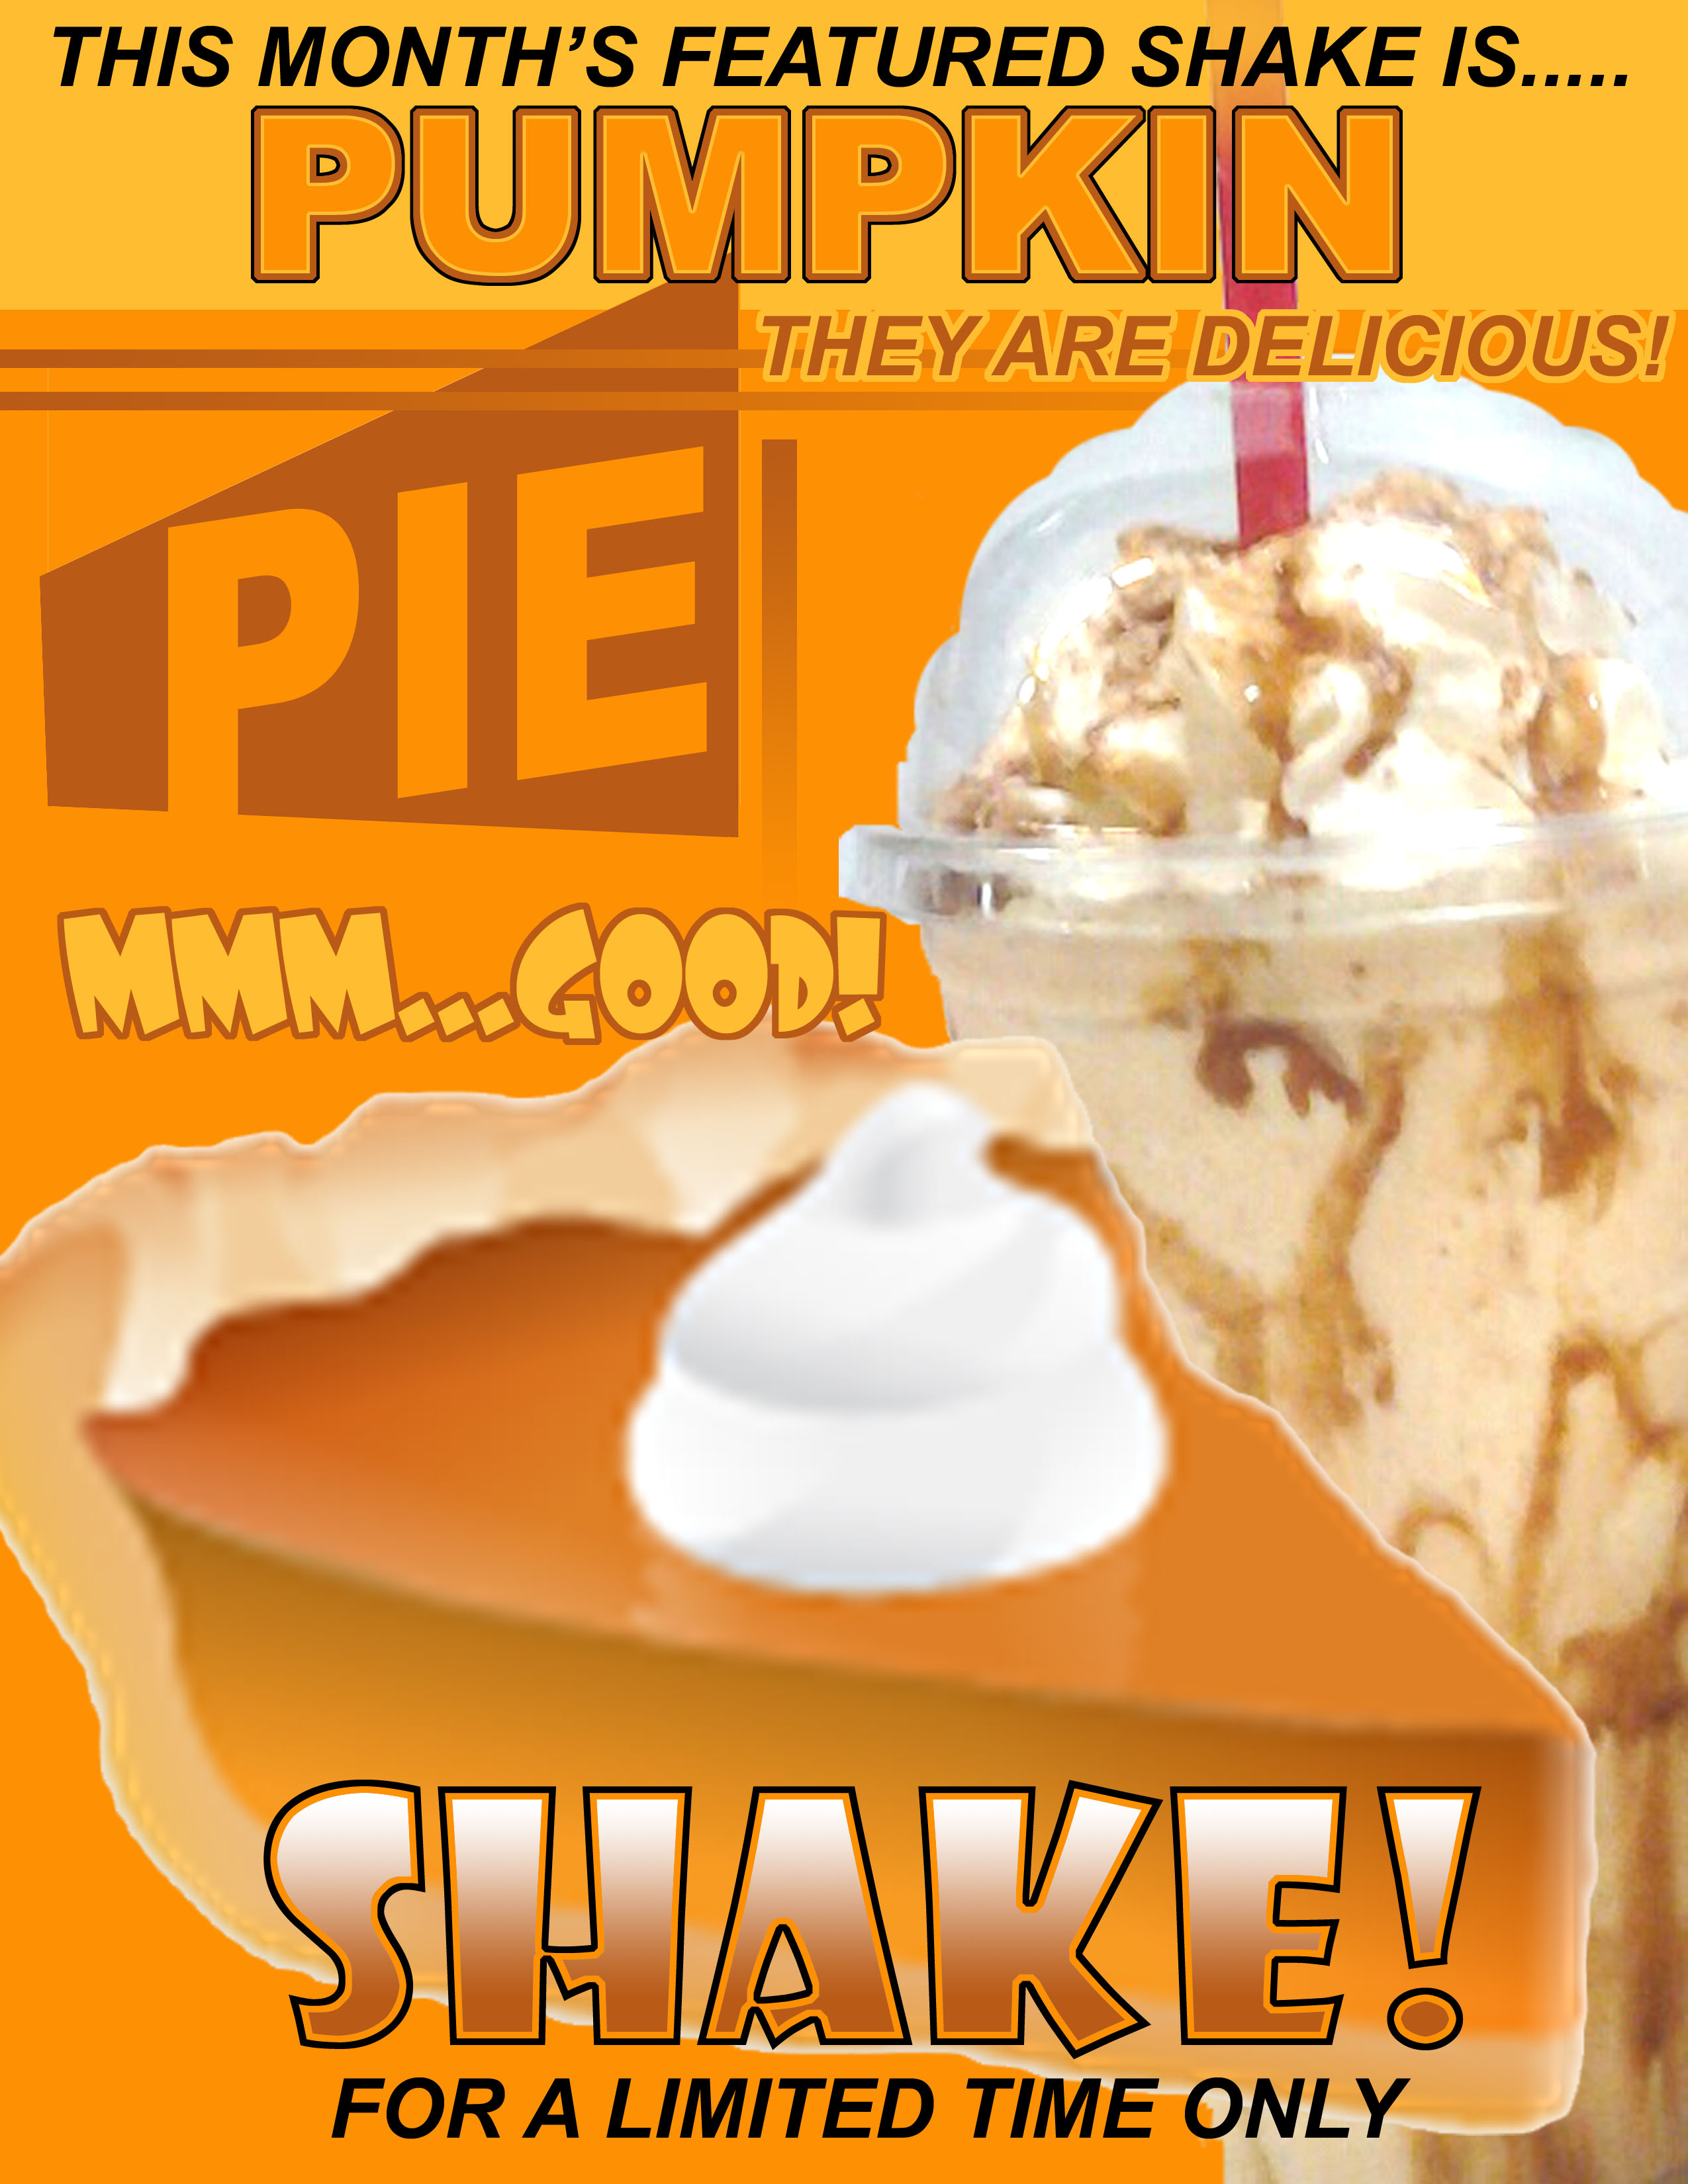 Featured Shake of the Month: Pumpkin Pie